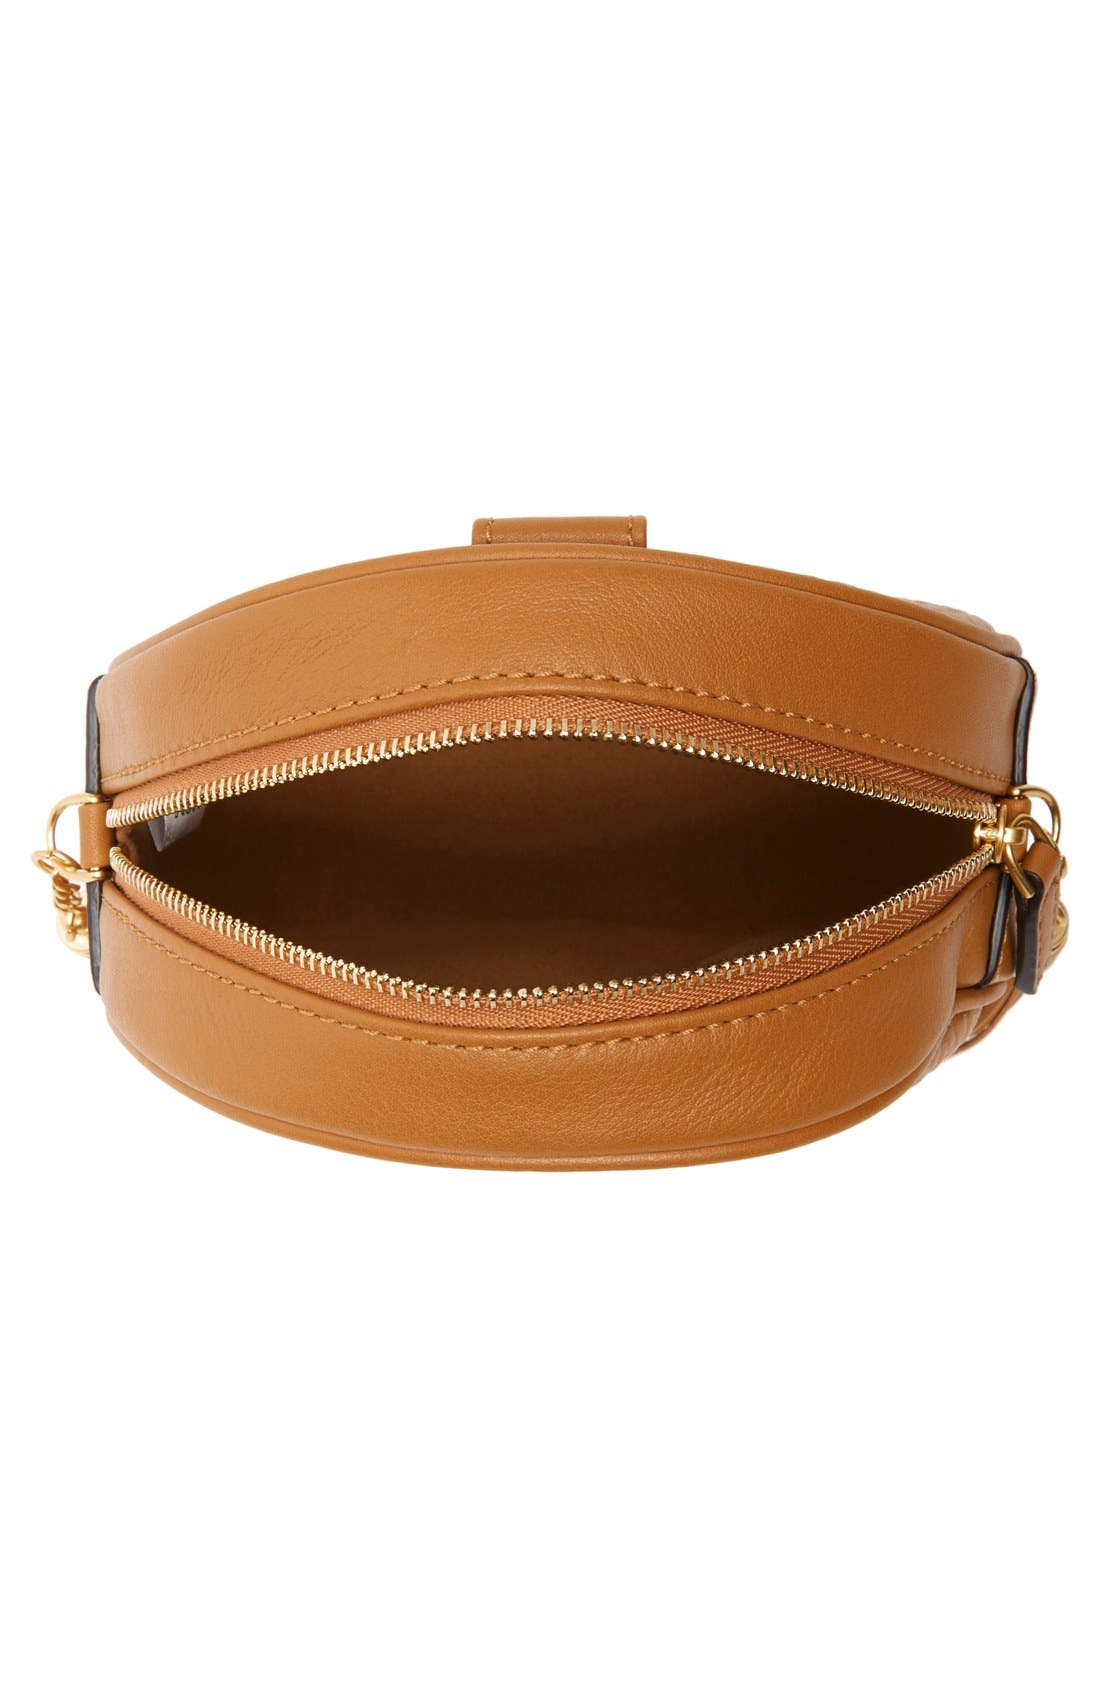 'Rabbit Tambourine Small' Round Crossbody Bag,                             Alternate thumbnail 4, color,                             200